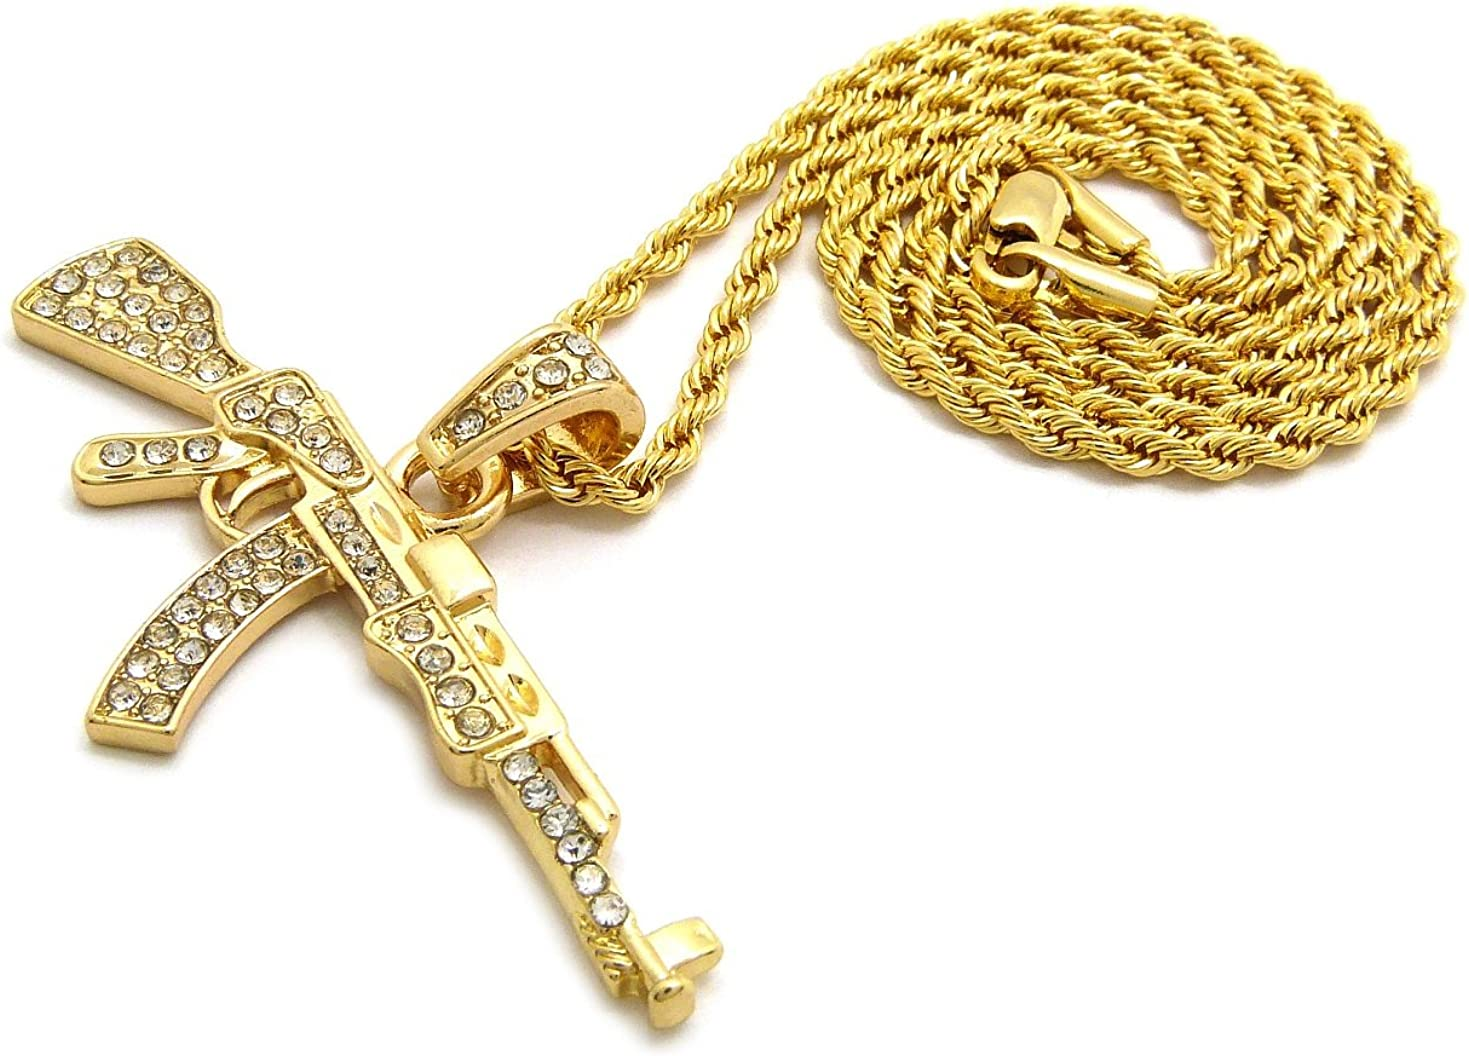 XSP627 NEW ICED OUT AK47 PENDANT /& 24 BOX//CUBAN//ROPE CHAIN HIP HOP NECKLACES